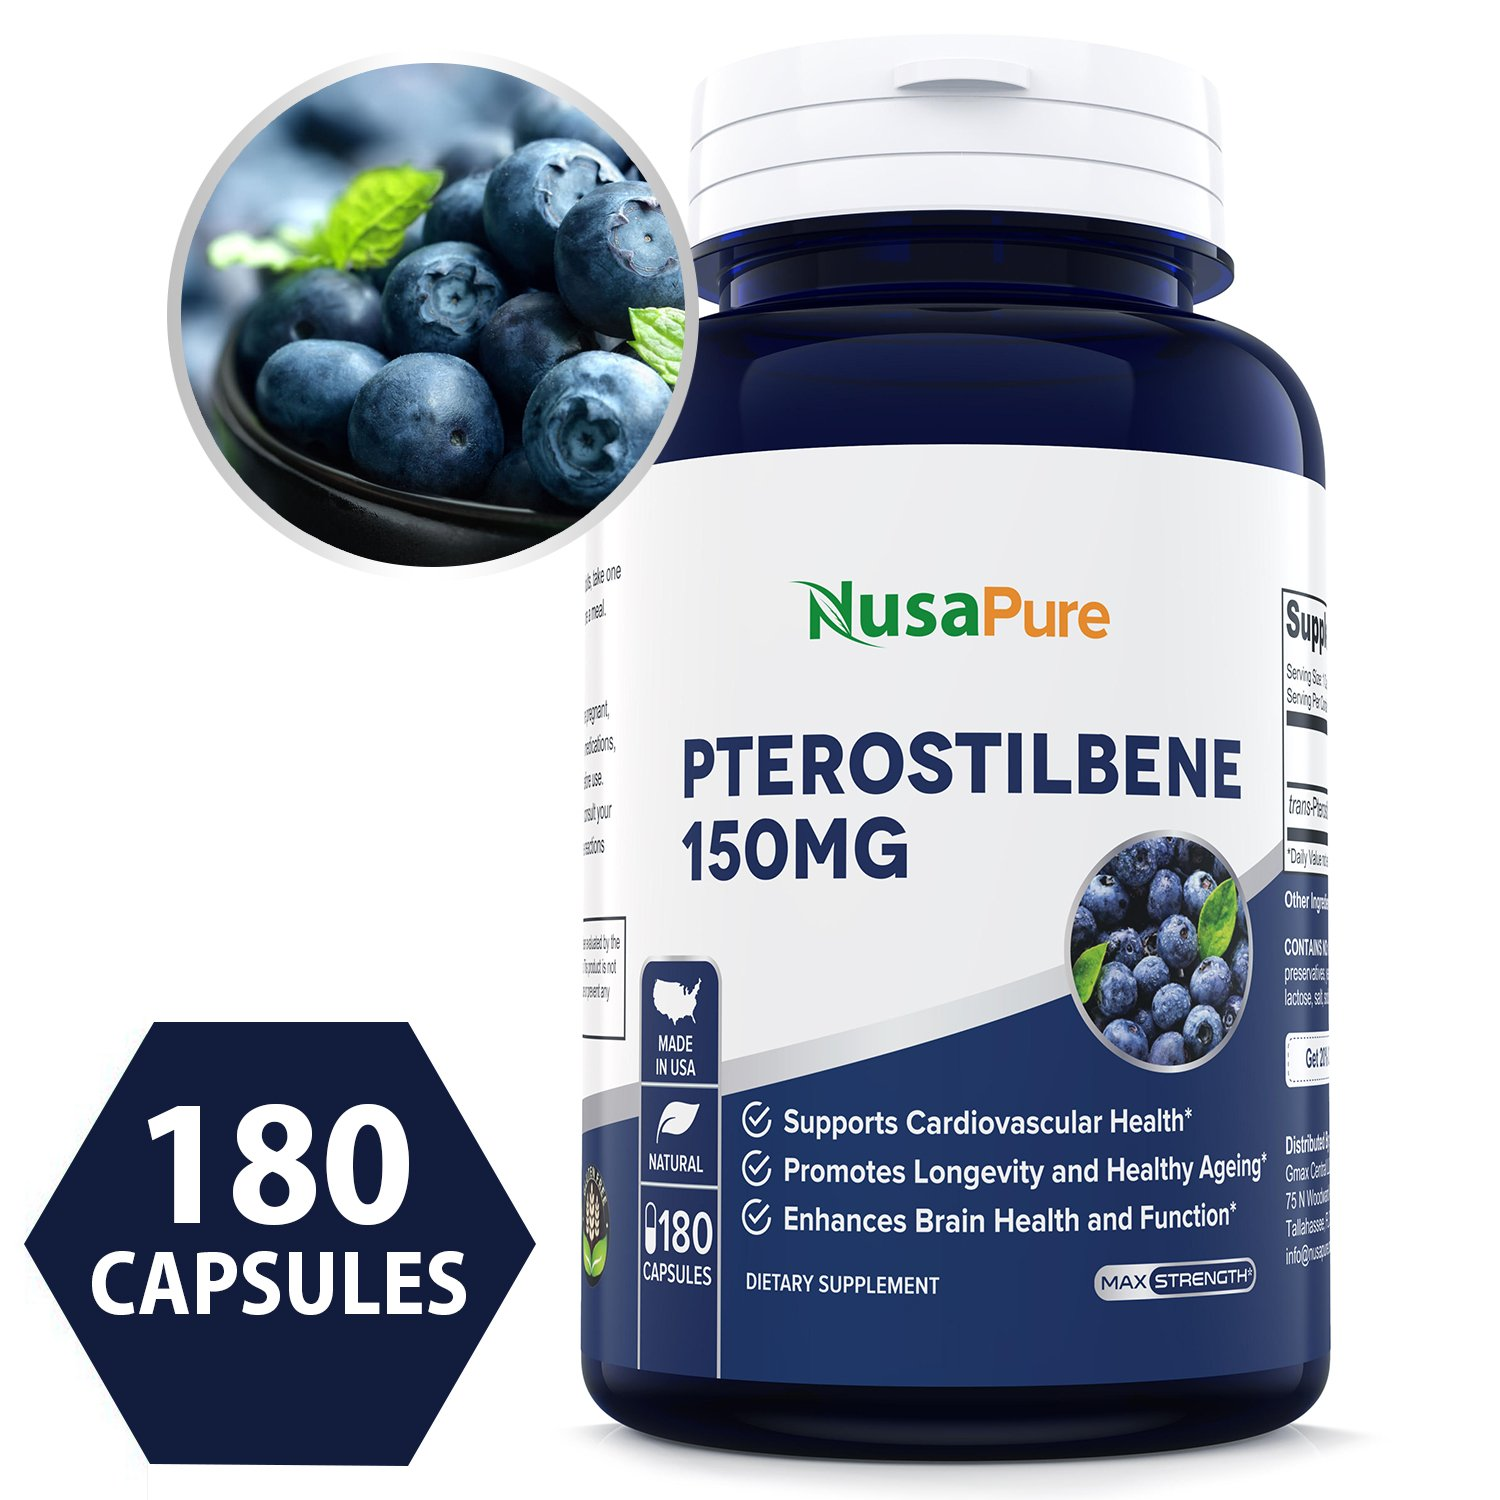 Best Pterostilbene 150mg 180 Caps (Non-GMO & Gluten Free) - Promotes Healthy Aging and Longevity - Better Than Resveratrol - 100% Money Back Guarantee - Order Risk Free!